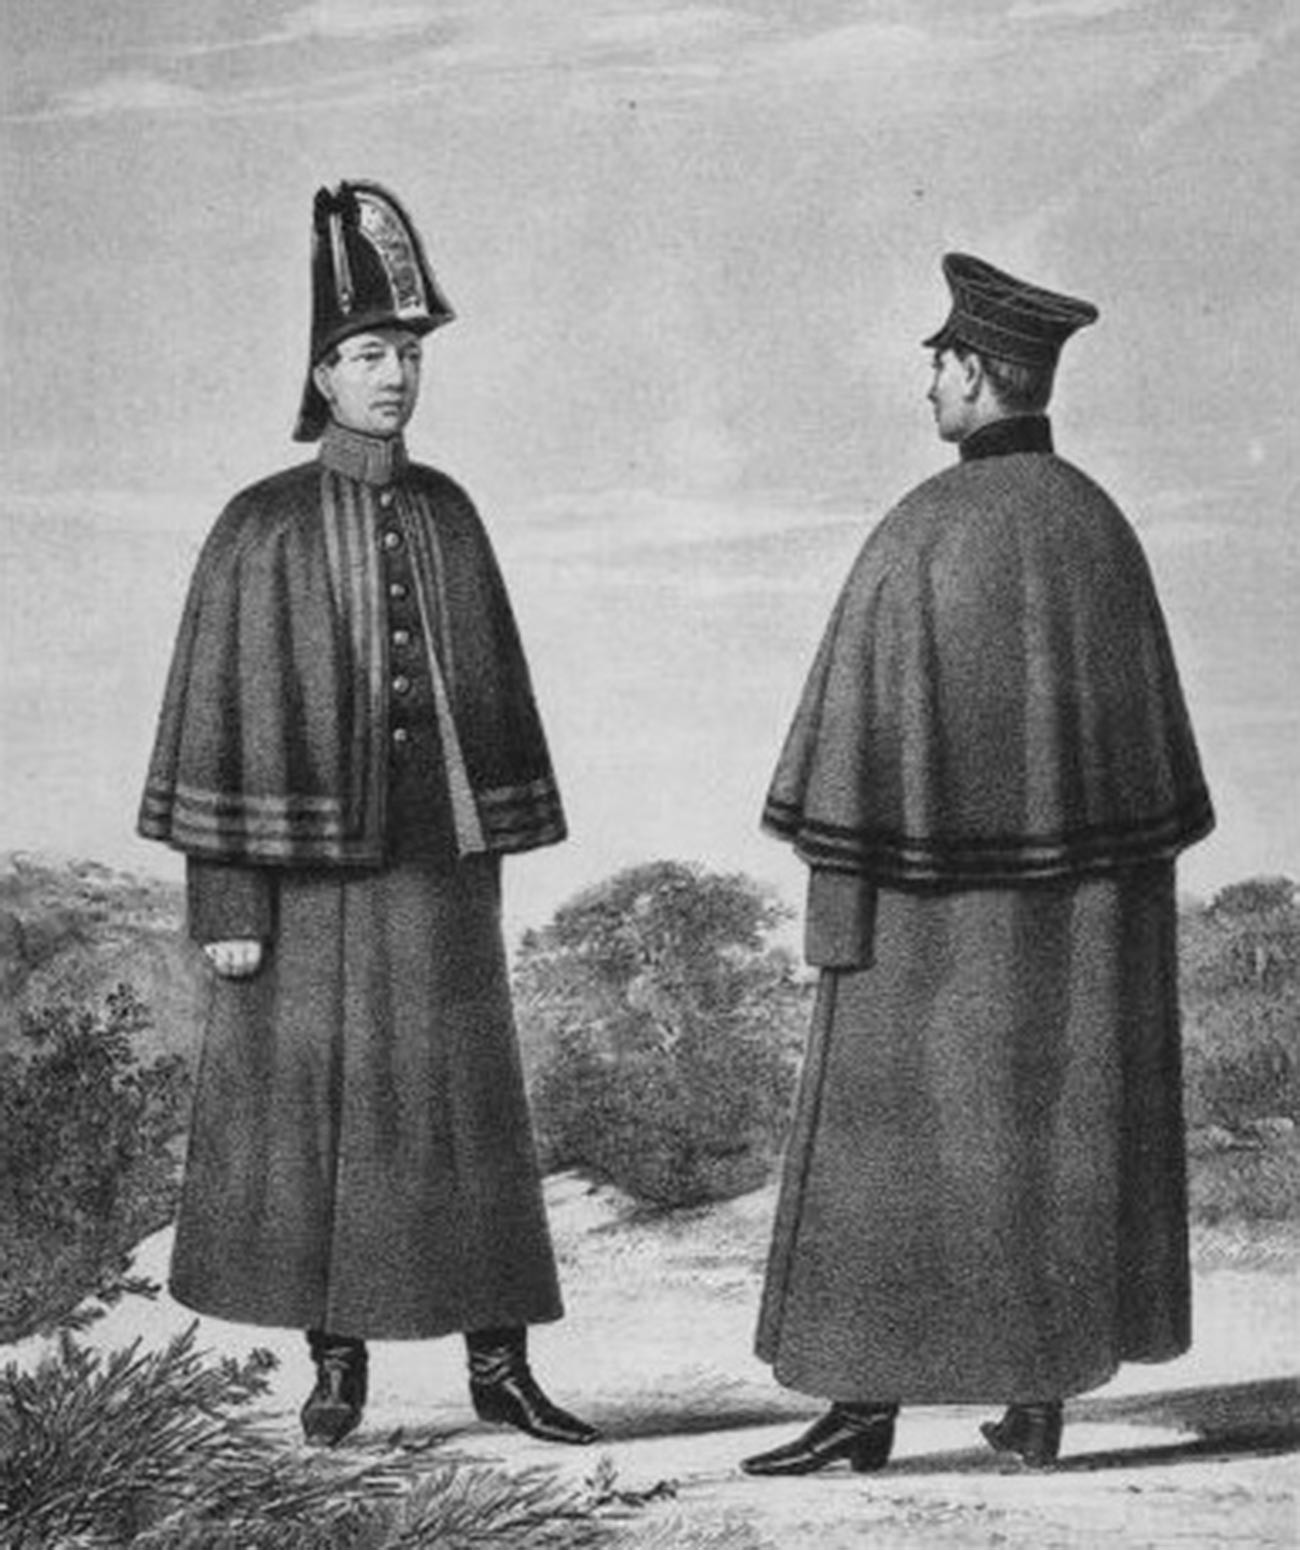 Batmen of the Imperial Guard (L) and of the Imperial Army (R) in their uniform, 1825-1855